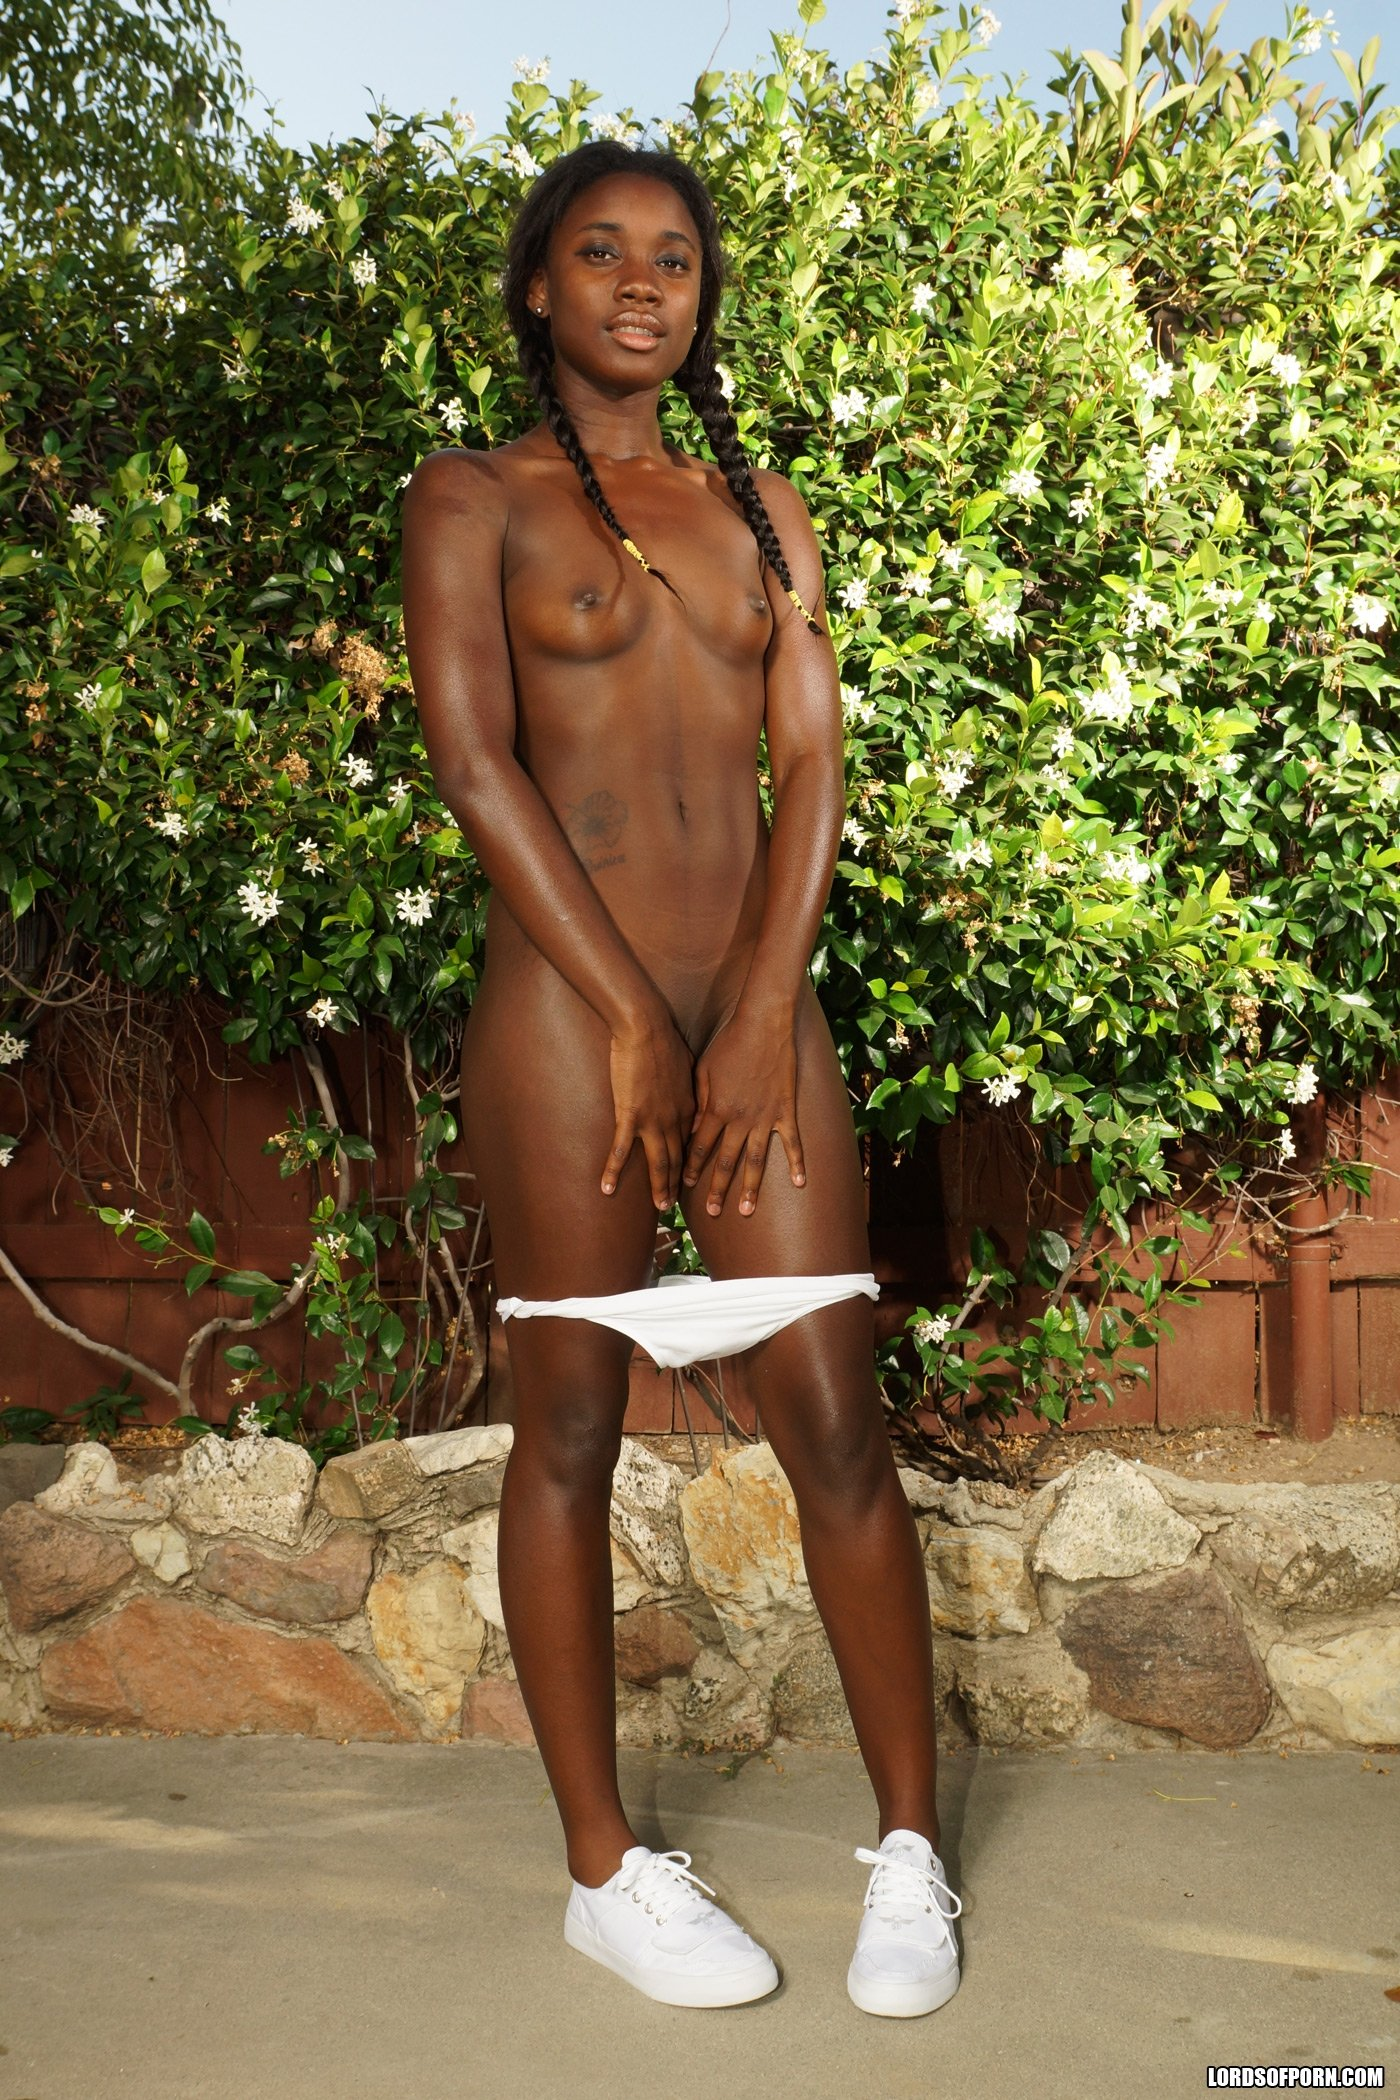 xvideos big black woman add photo